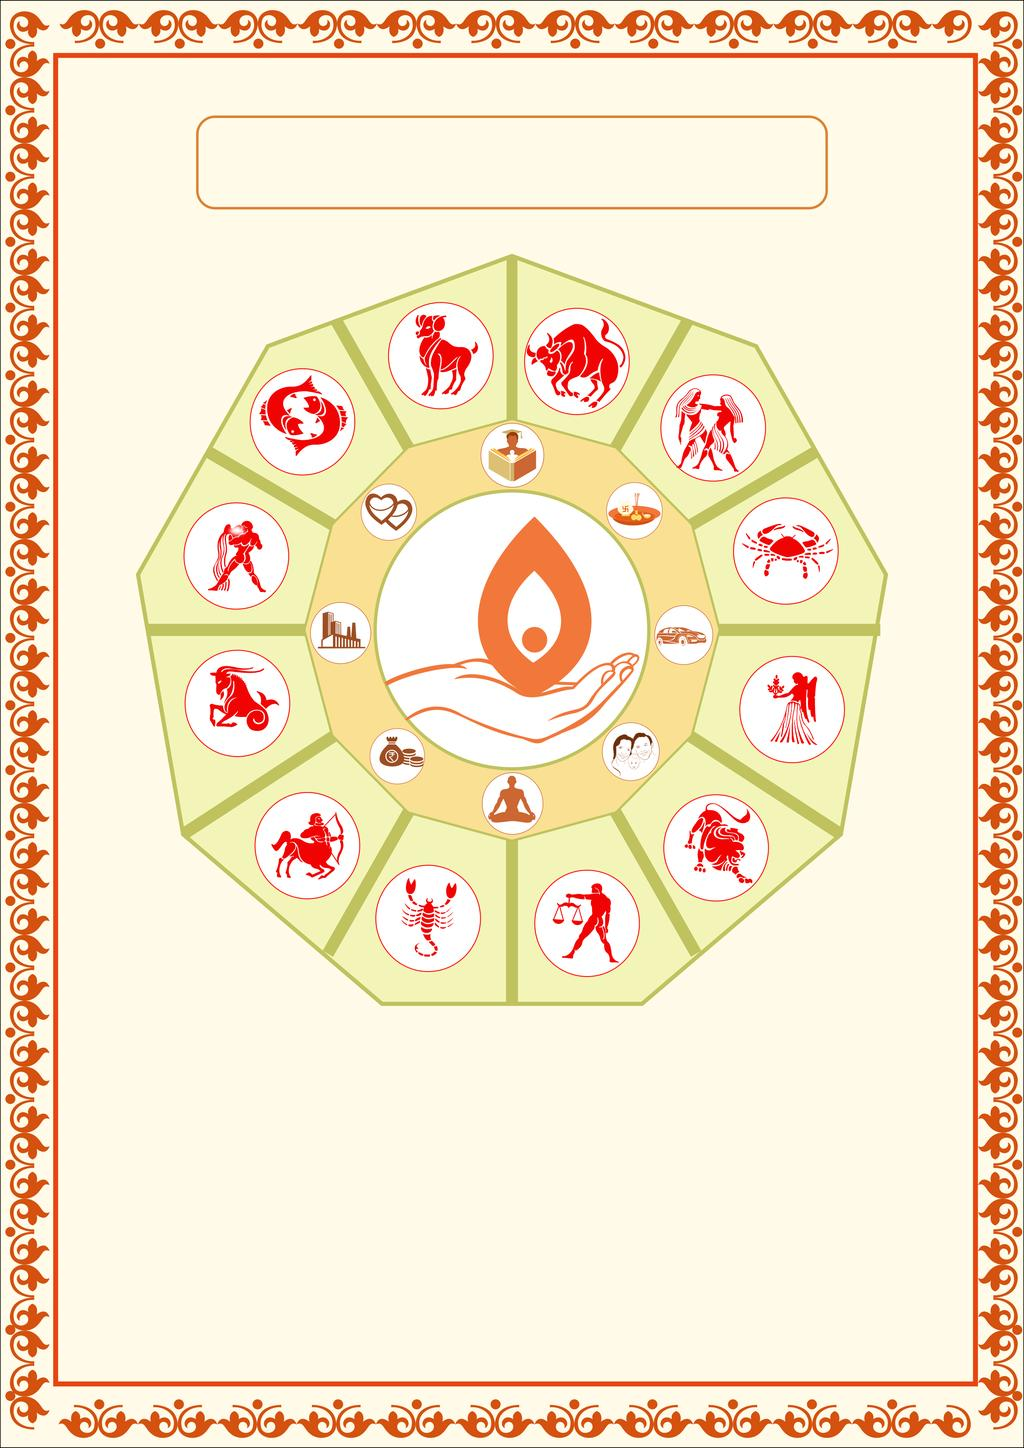 SAMPLE  Jeewan Chakra  MindSutra Software Technologies A-16